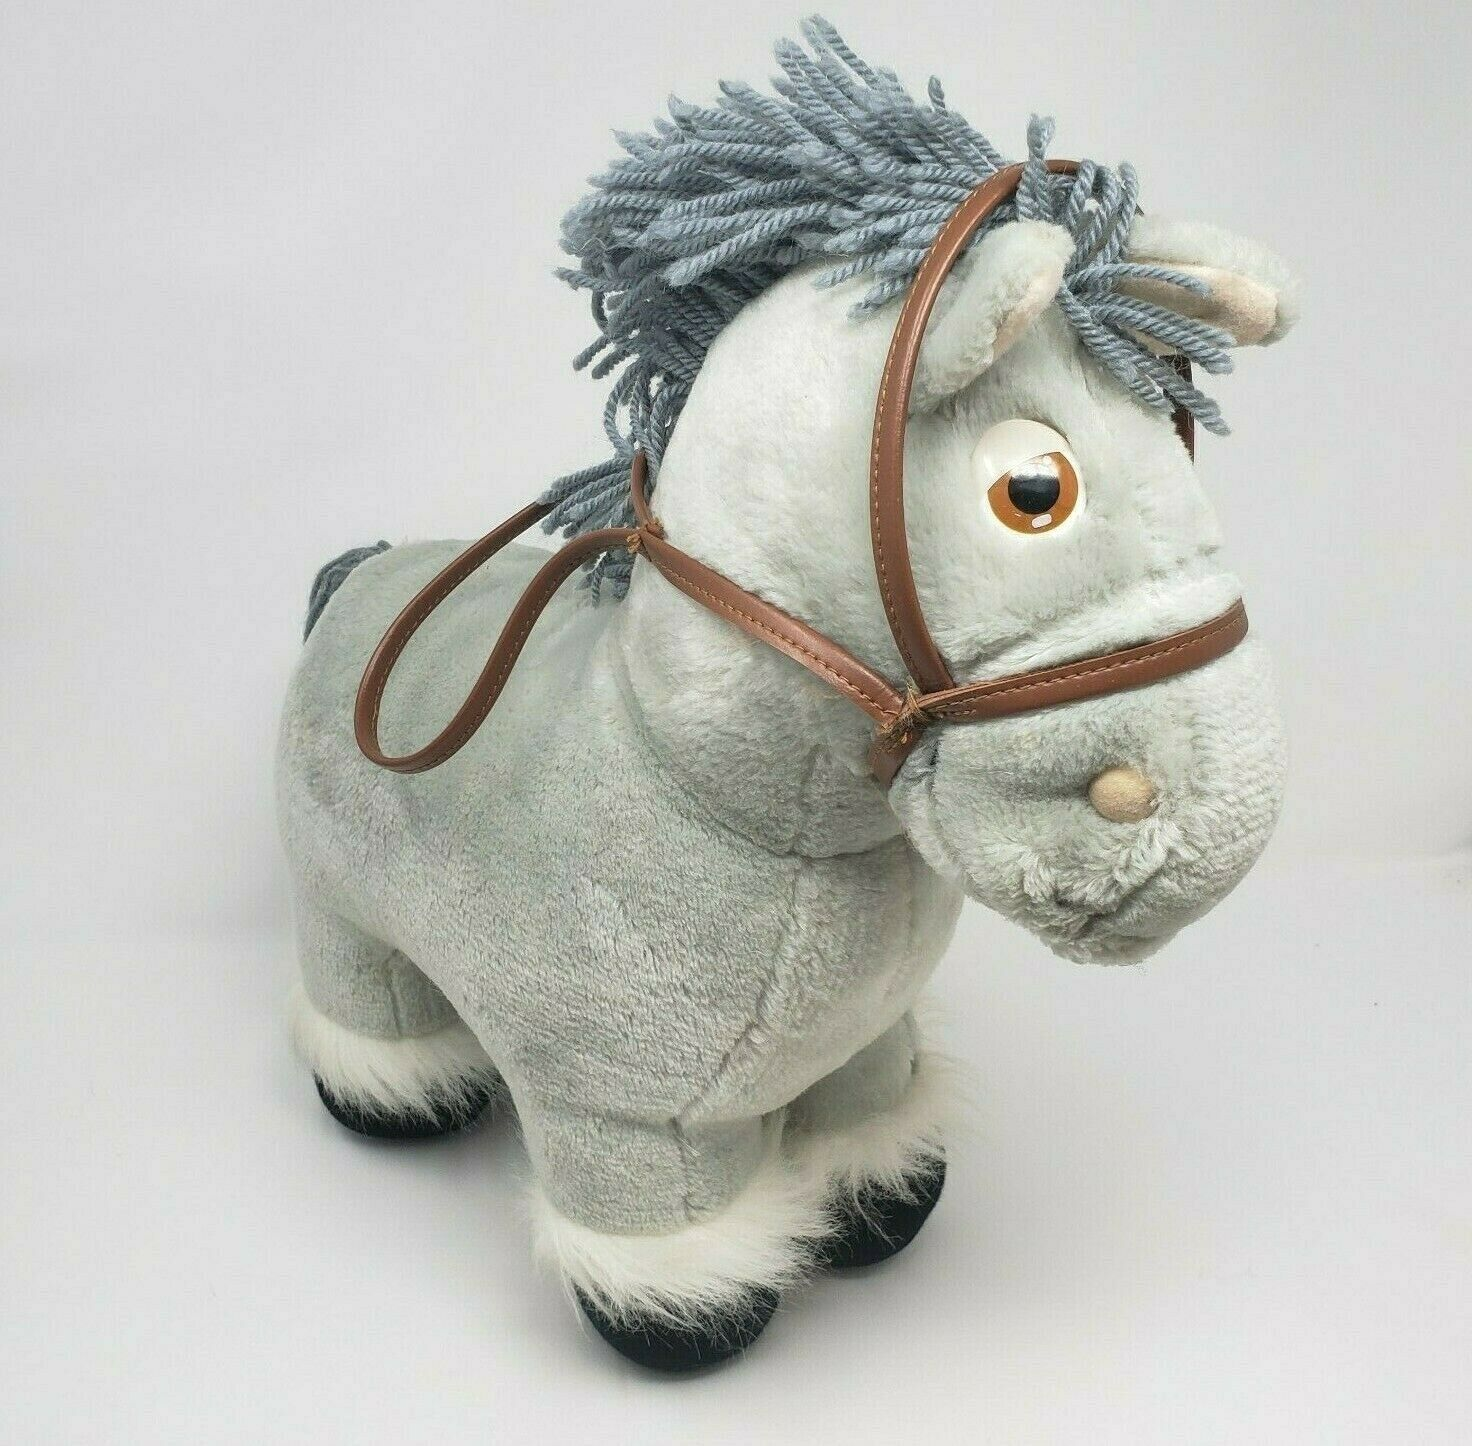 Primary image for VINTAGE 1984 CABBAGE PATCH KIDS HORSE PONY CPK COLECO STUFFED ANIMAL PLUSH GREY